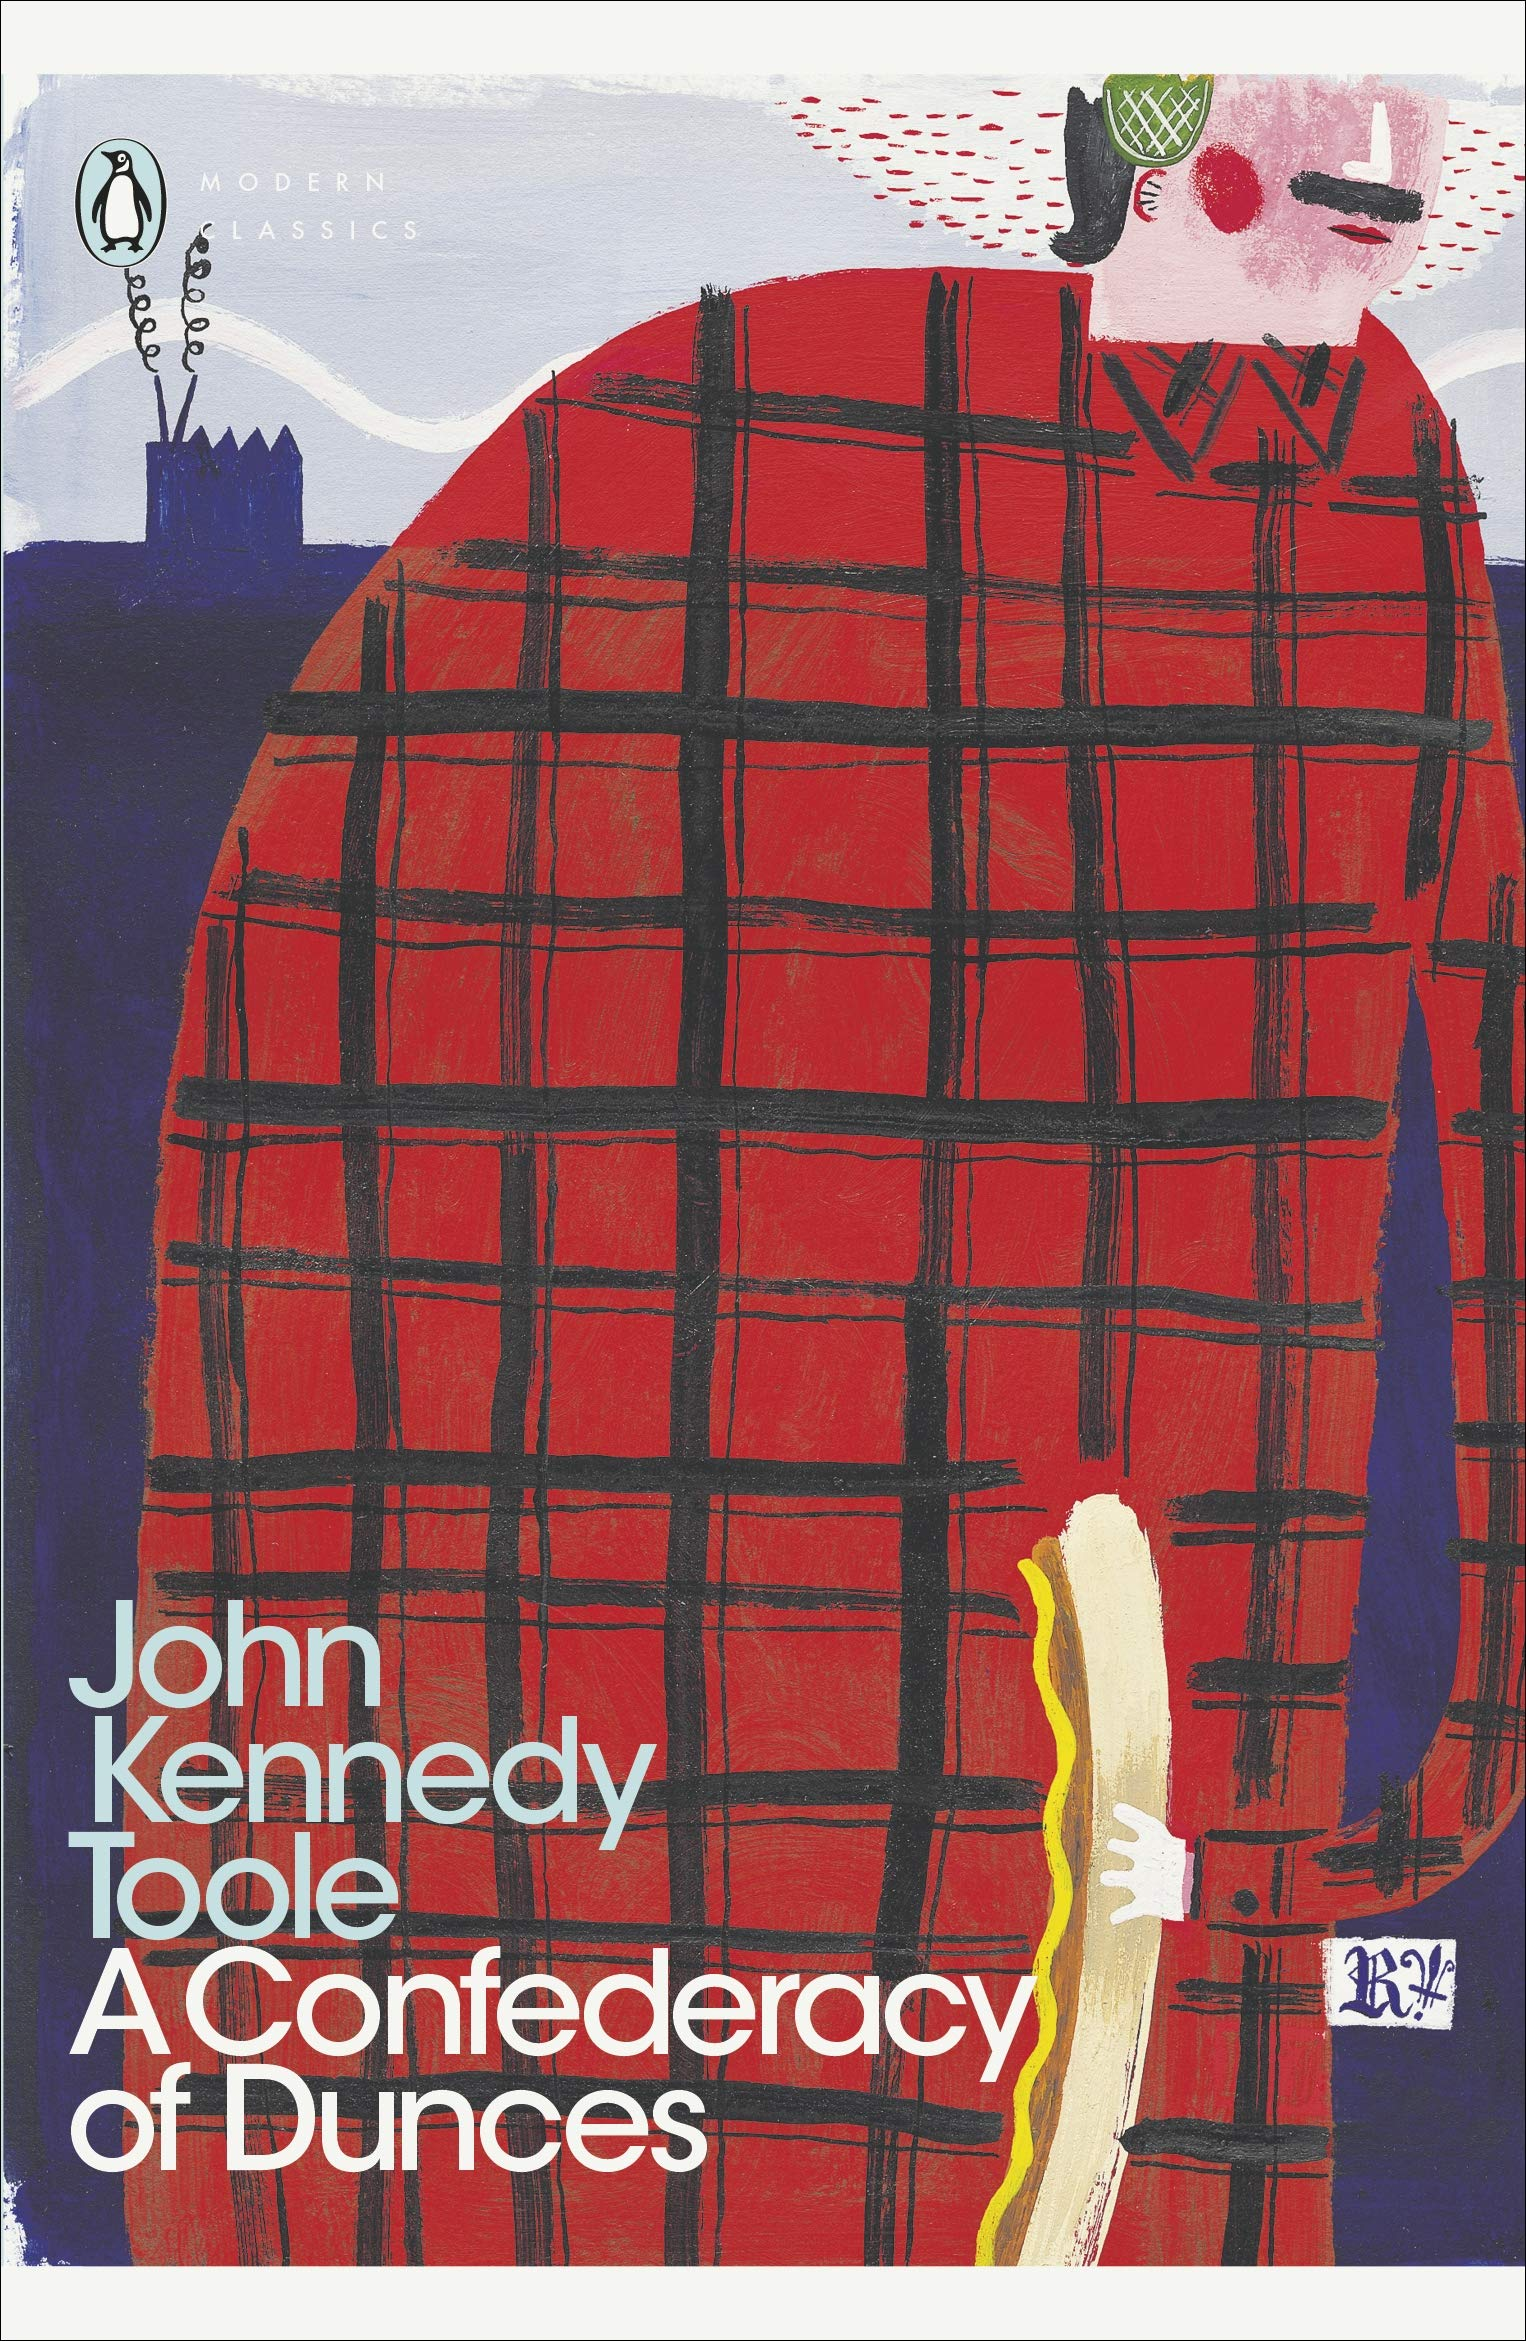 A Confederacy of Dunces: Amazon.co.uk: John Kennedy Toole, Walter Percy:  9780141182865: Books